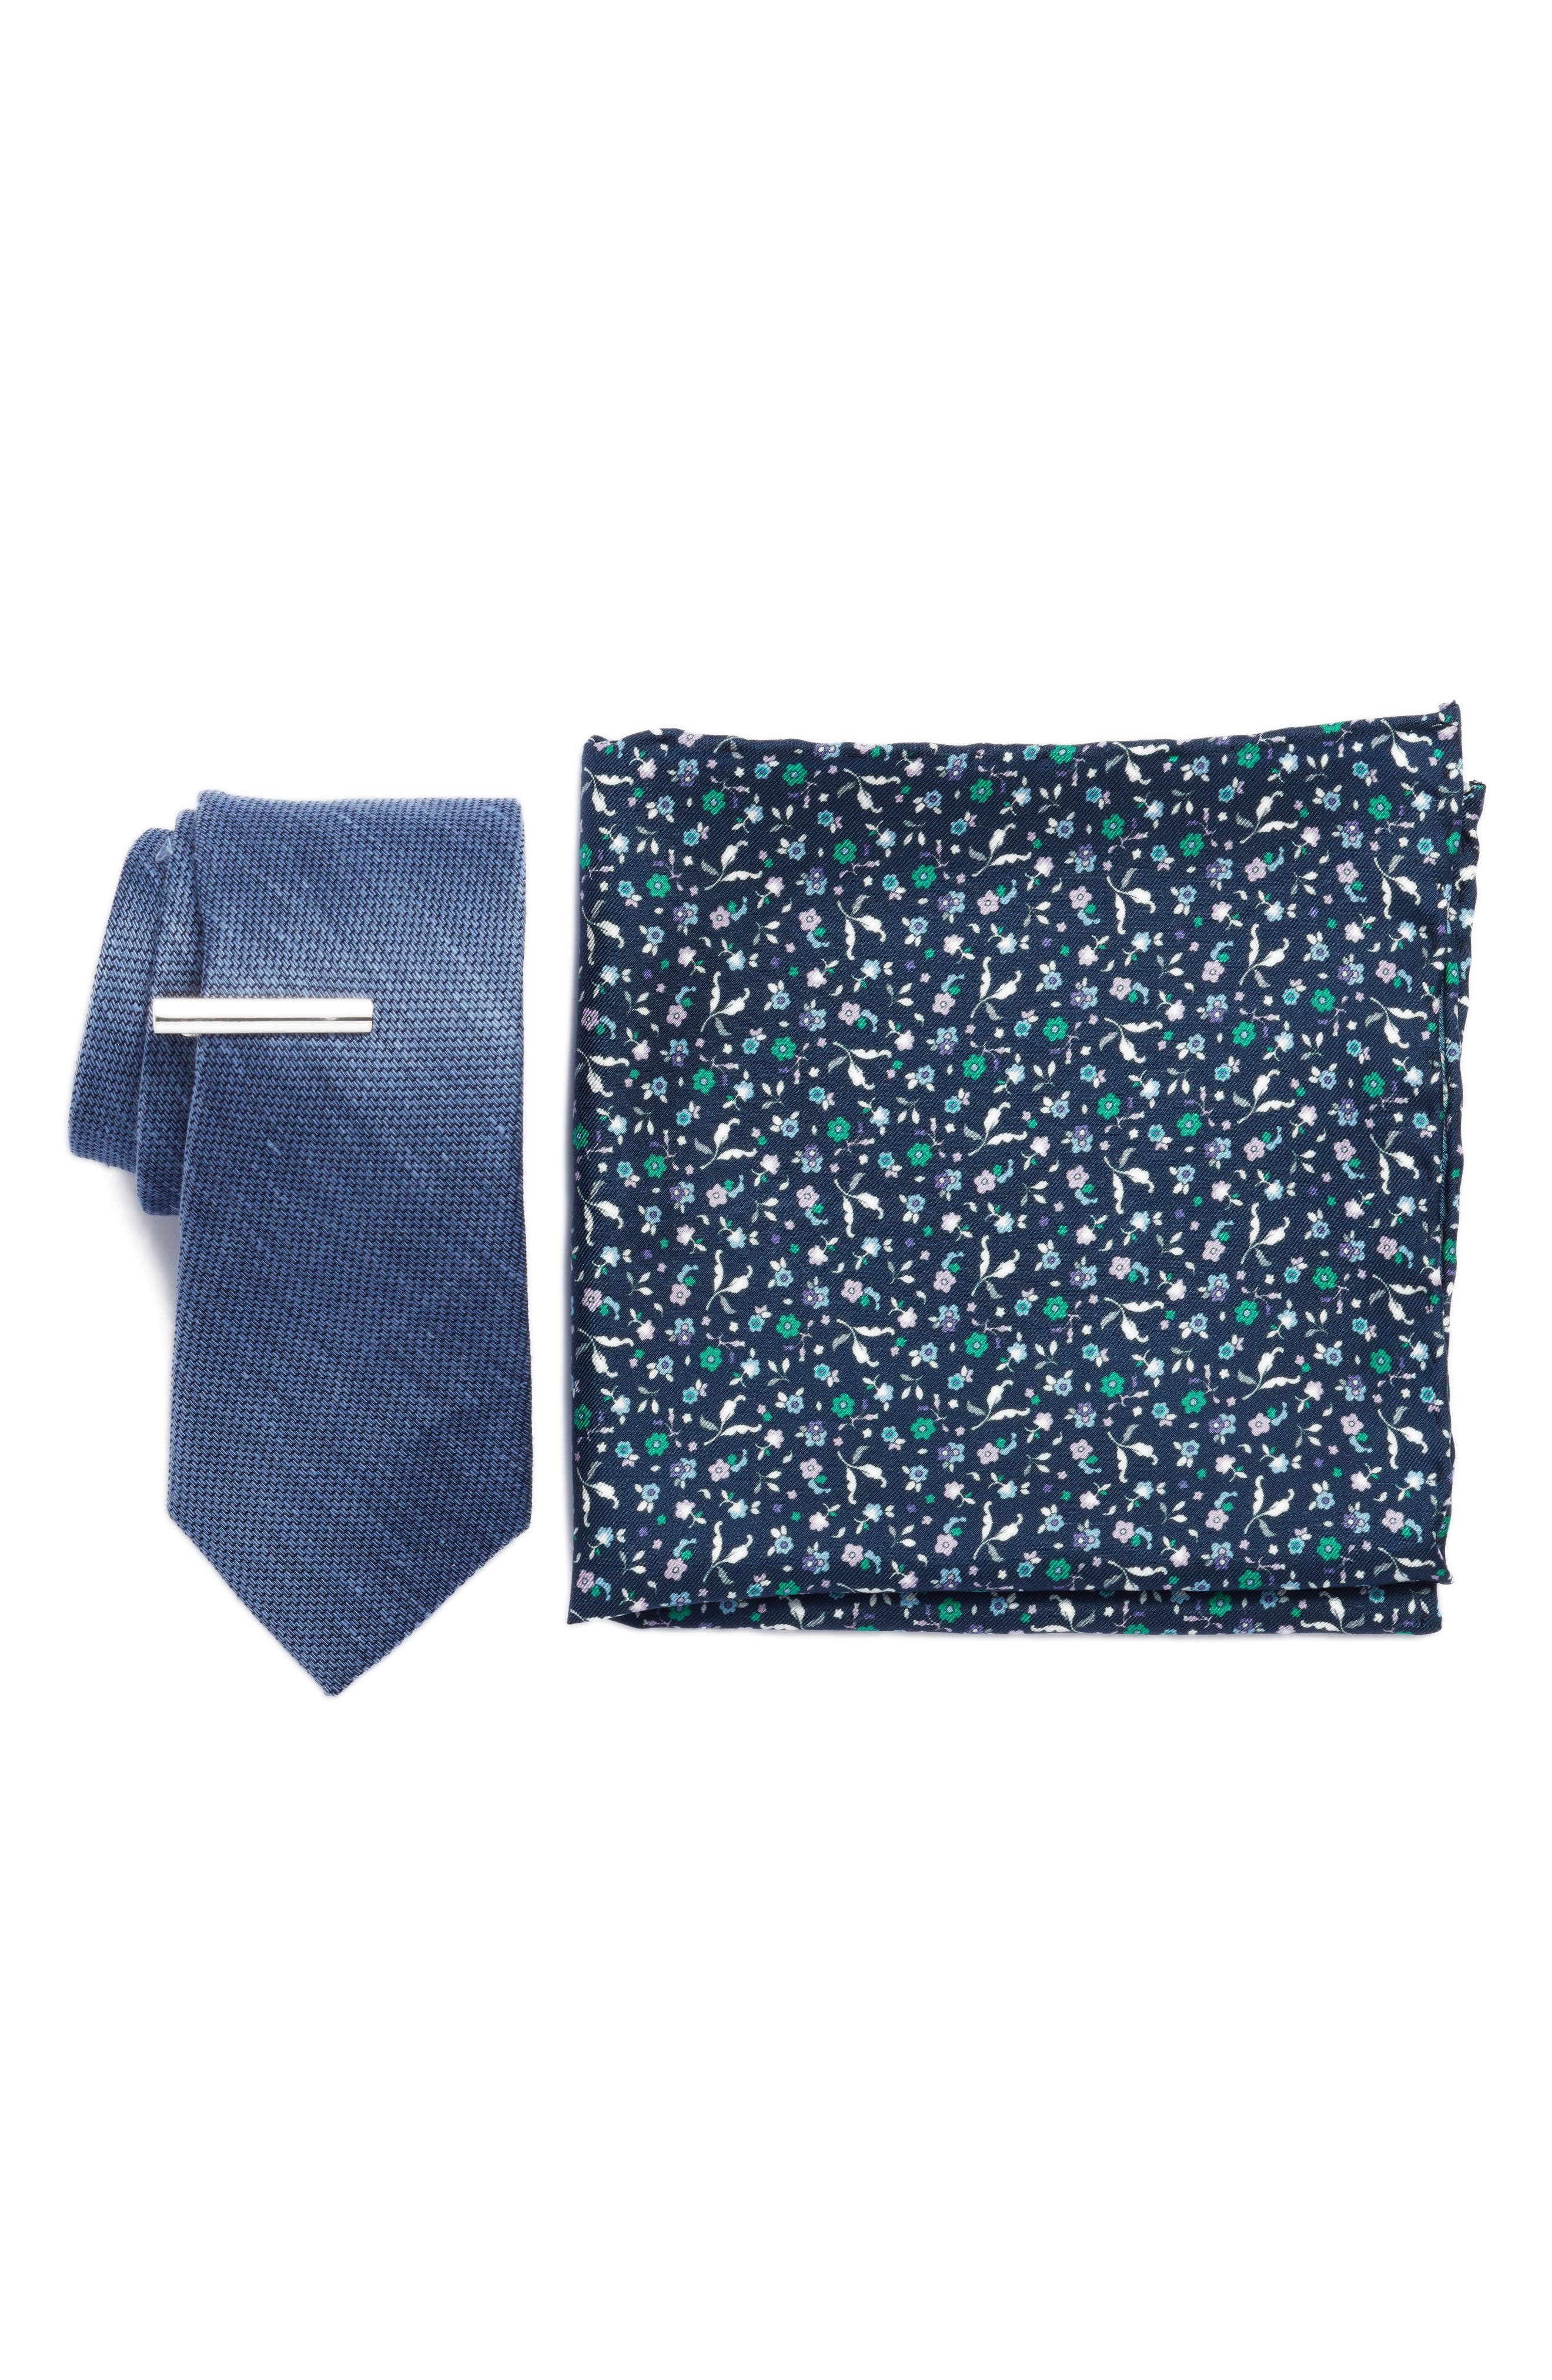 Texture Solid 3-Piece Skinny Tie Style Box,                             Main thumbnail 1, color,                             Light Blue